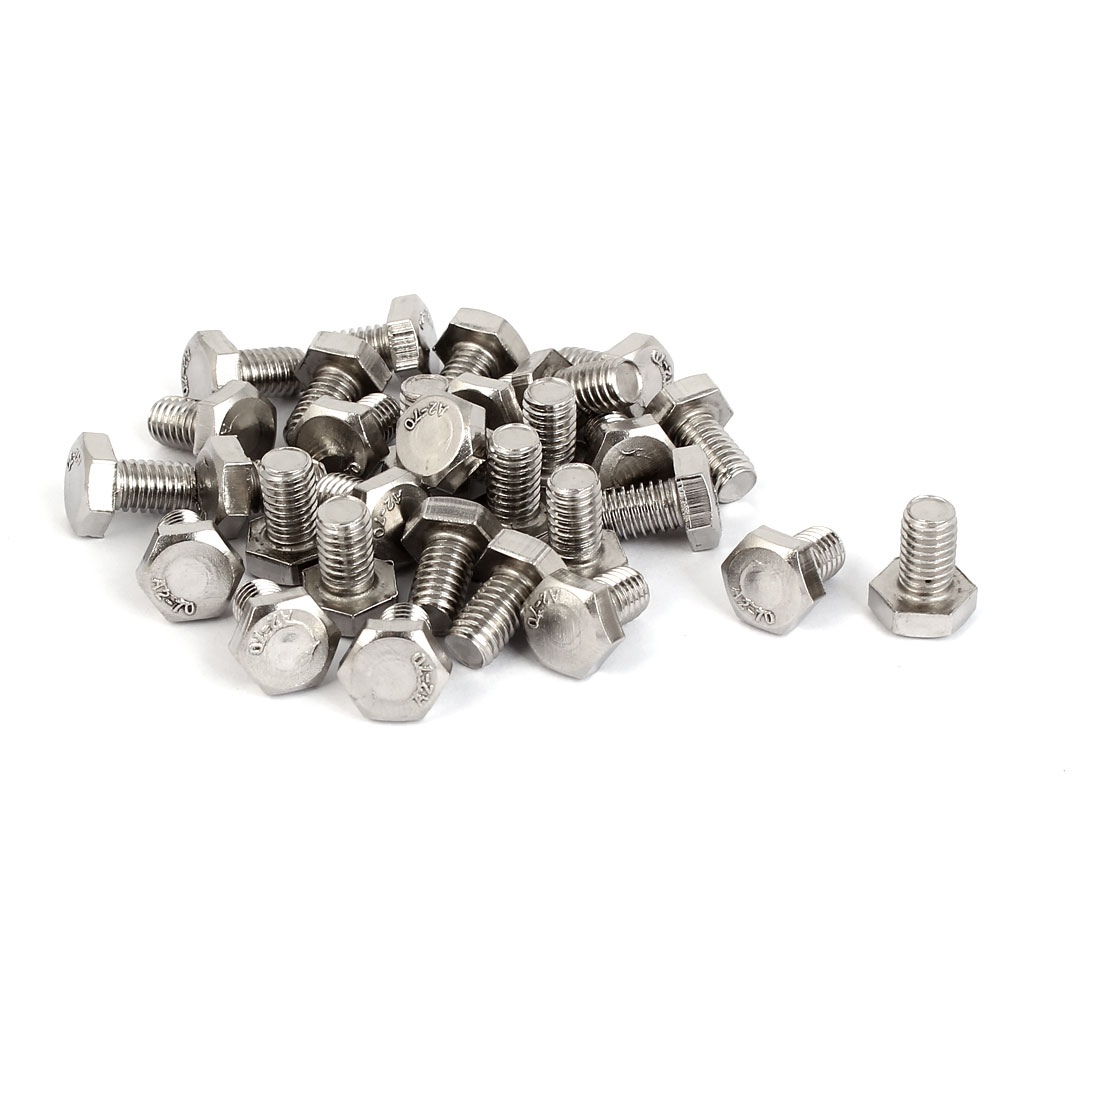 M6 x 10mm Stainless Steel Fasteners Fully Thread Hex Hexagon Screws 30PCS